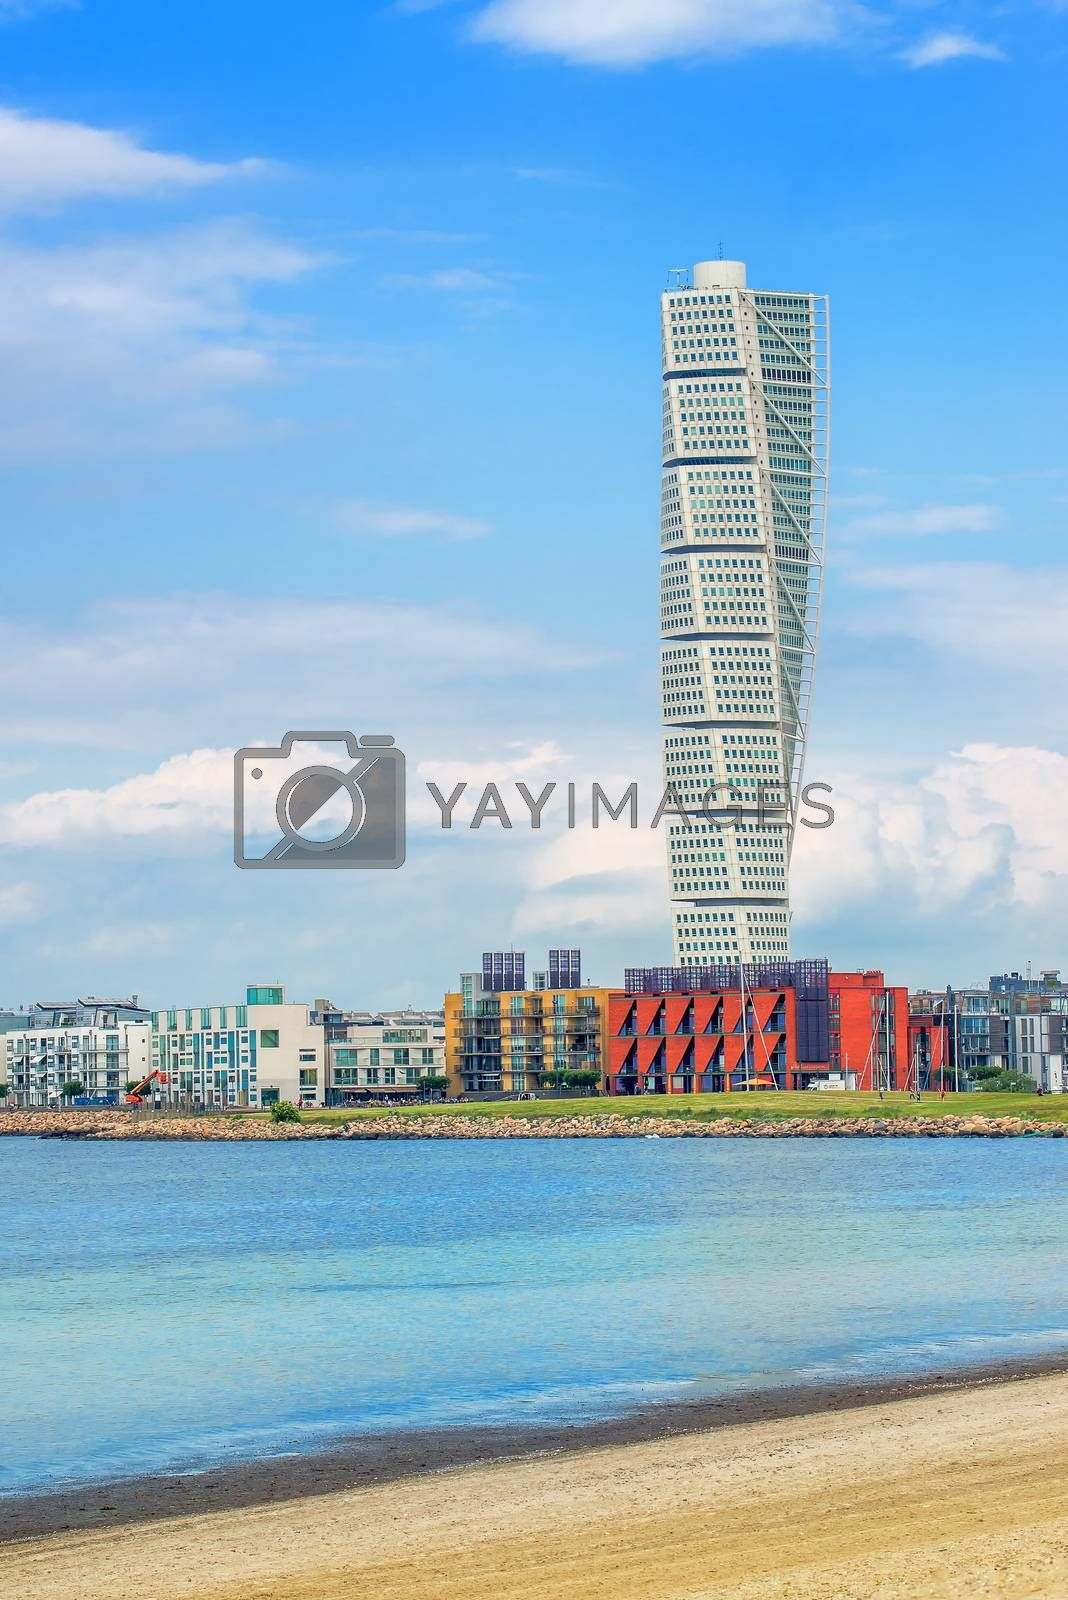 MALMO, SWEDEN - JUNE 29, 2015: Malmo Turning Torso, in Oresund West Harbor Area, Tallest Building in Sweden and Scandinavia, Reaching a Height of 190 metres with 54 stories and 147 apartments.